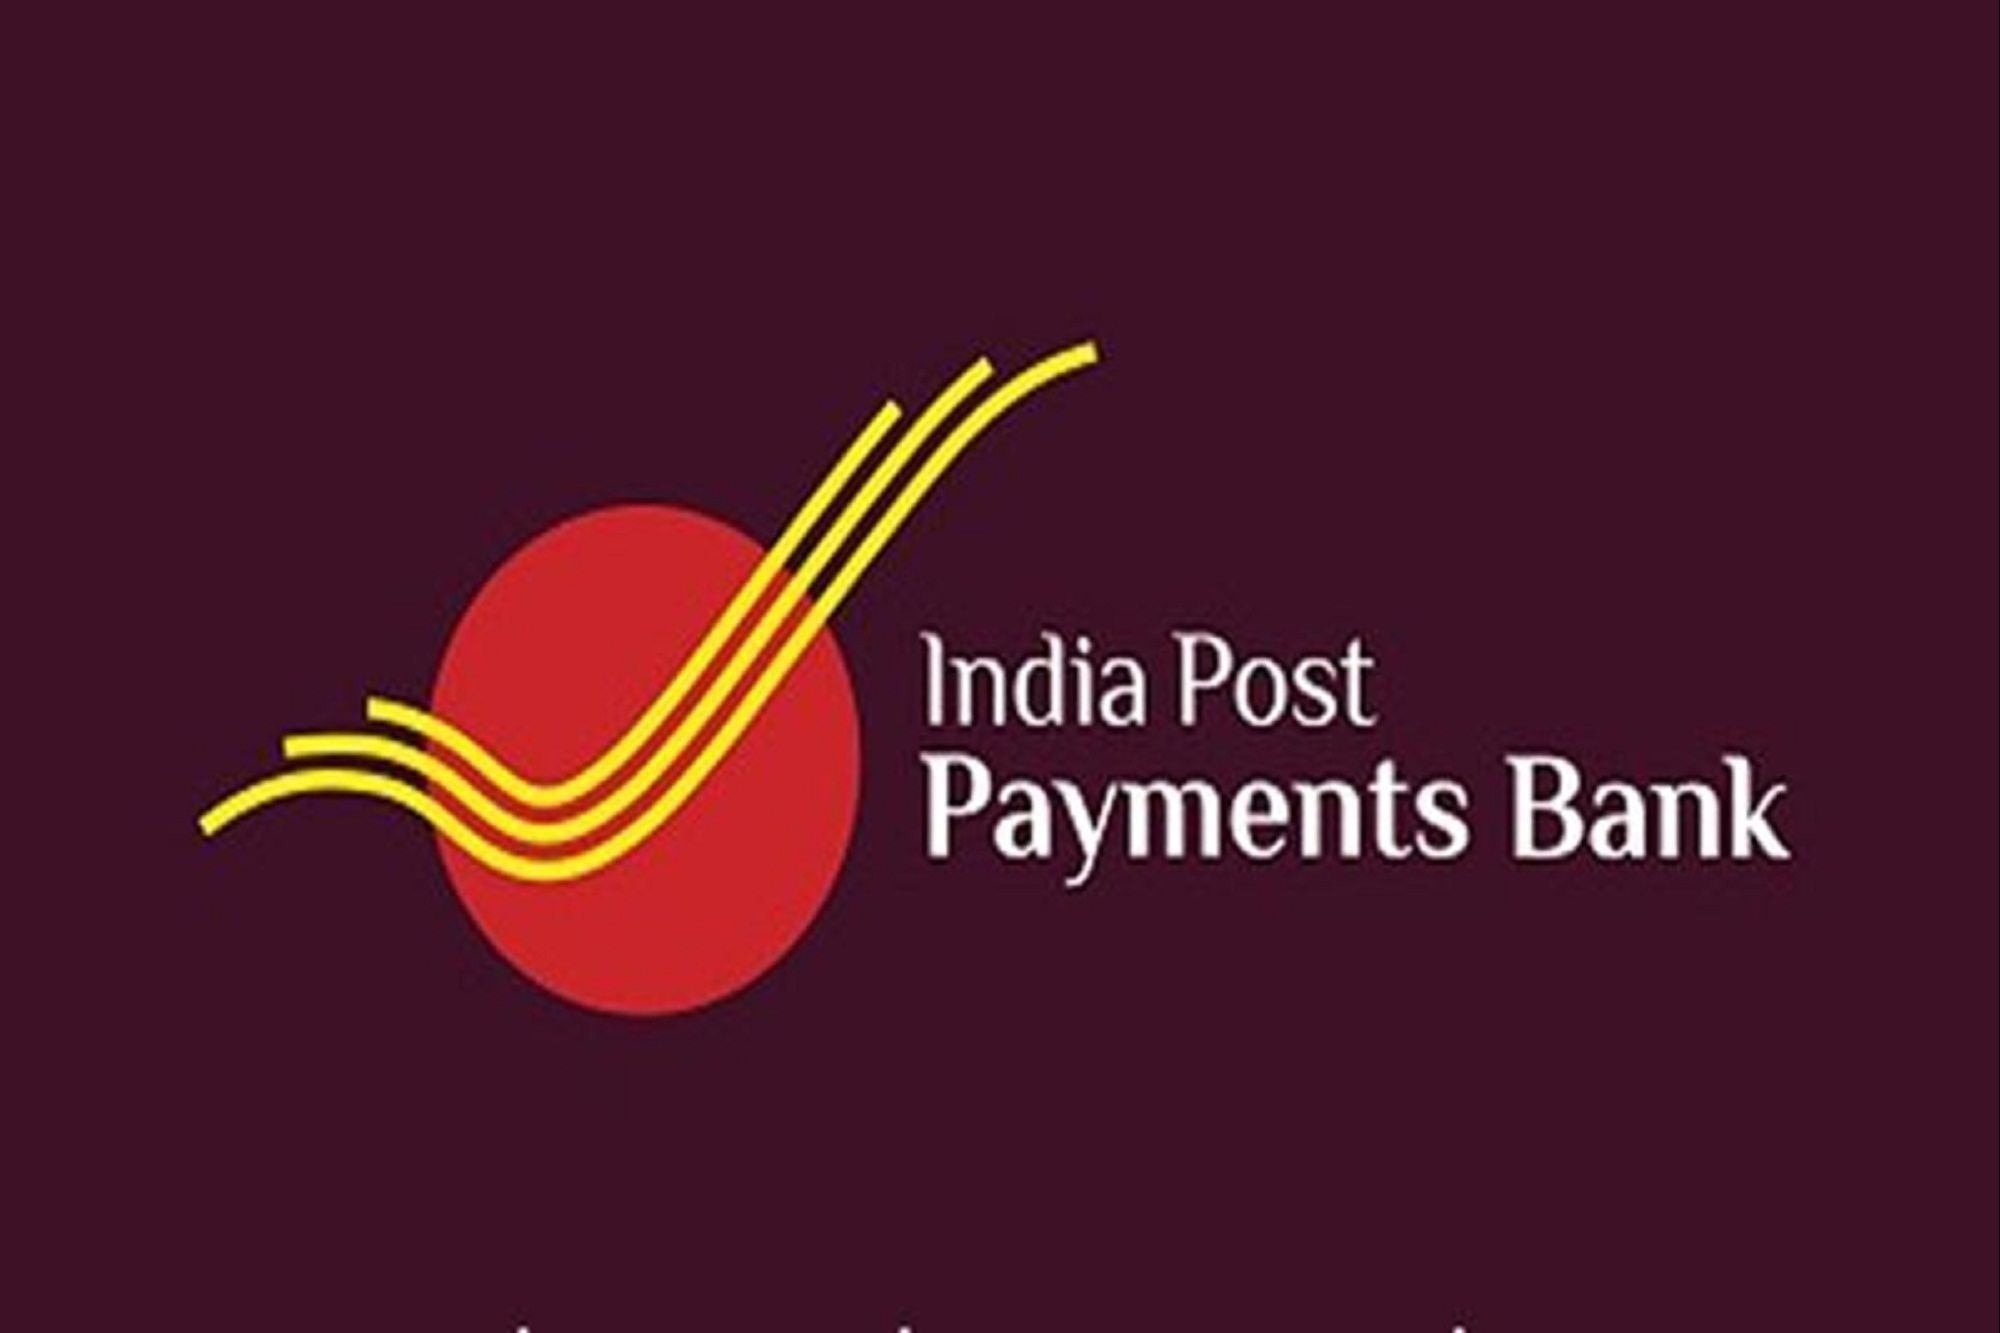 Government-Run India Post Payments Bank Now Has 2 Crore Customers